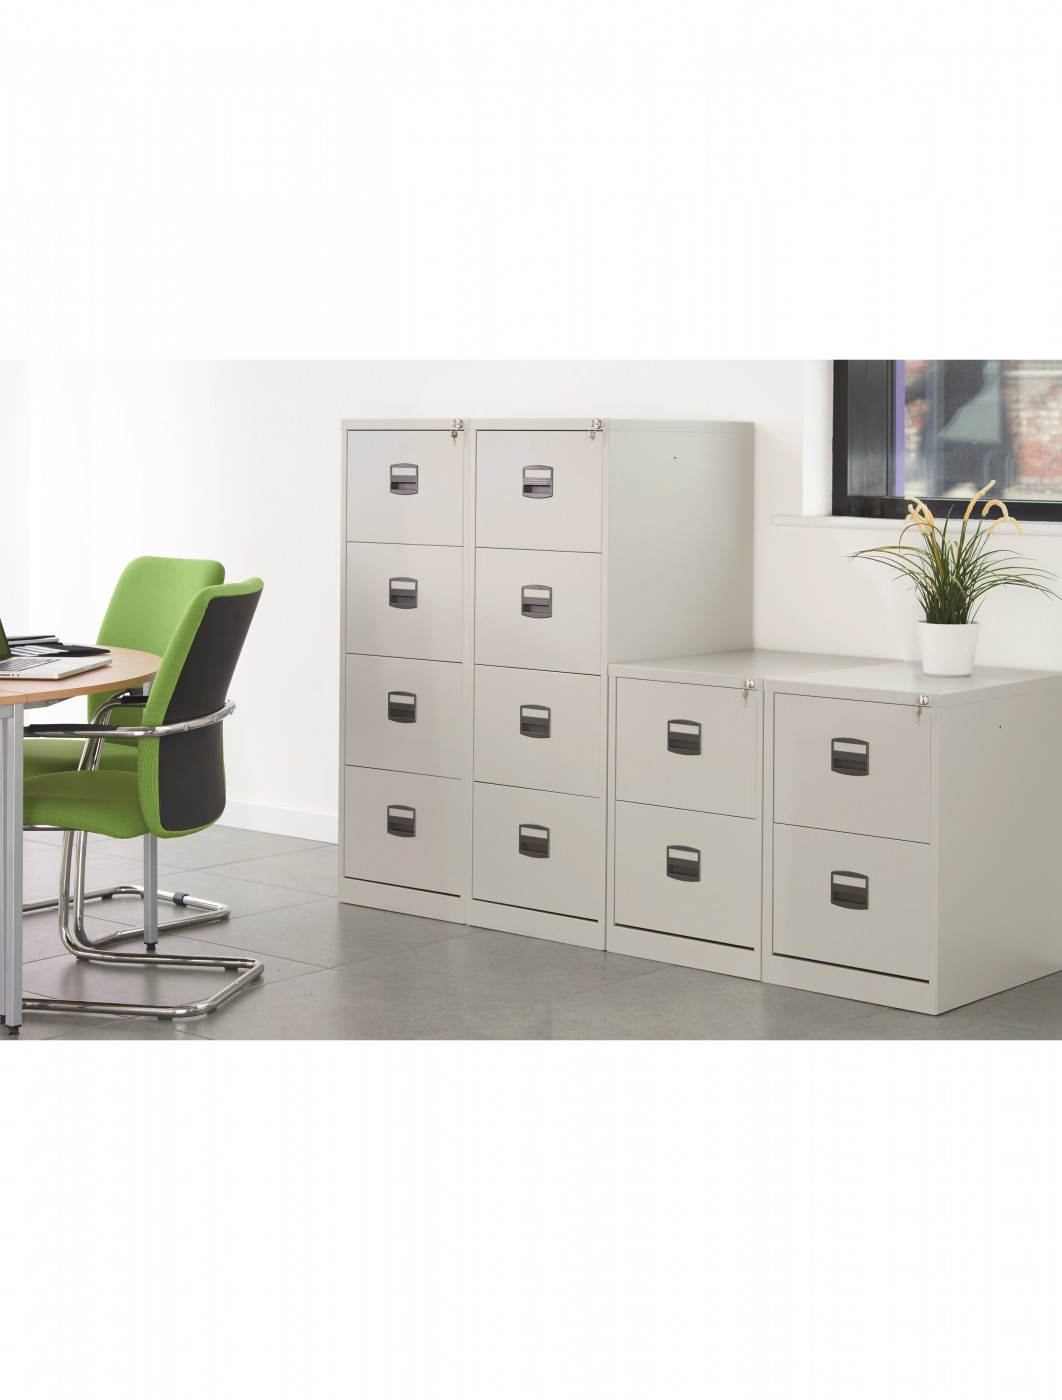 Bisley 3 Drawer Economy Contract Filing Cabinet BCF3